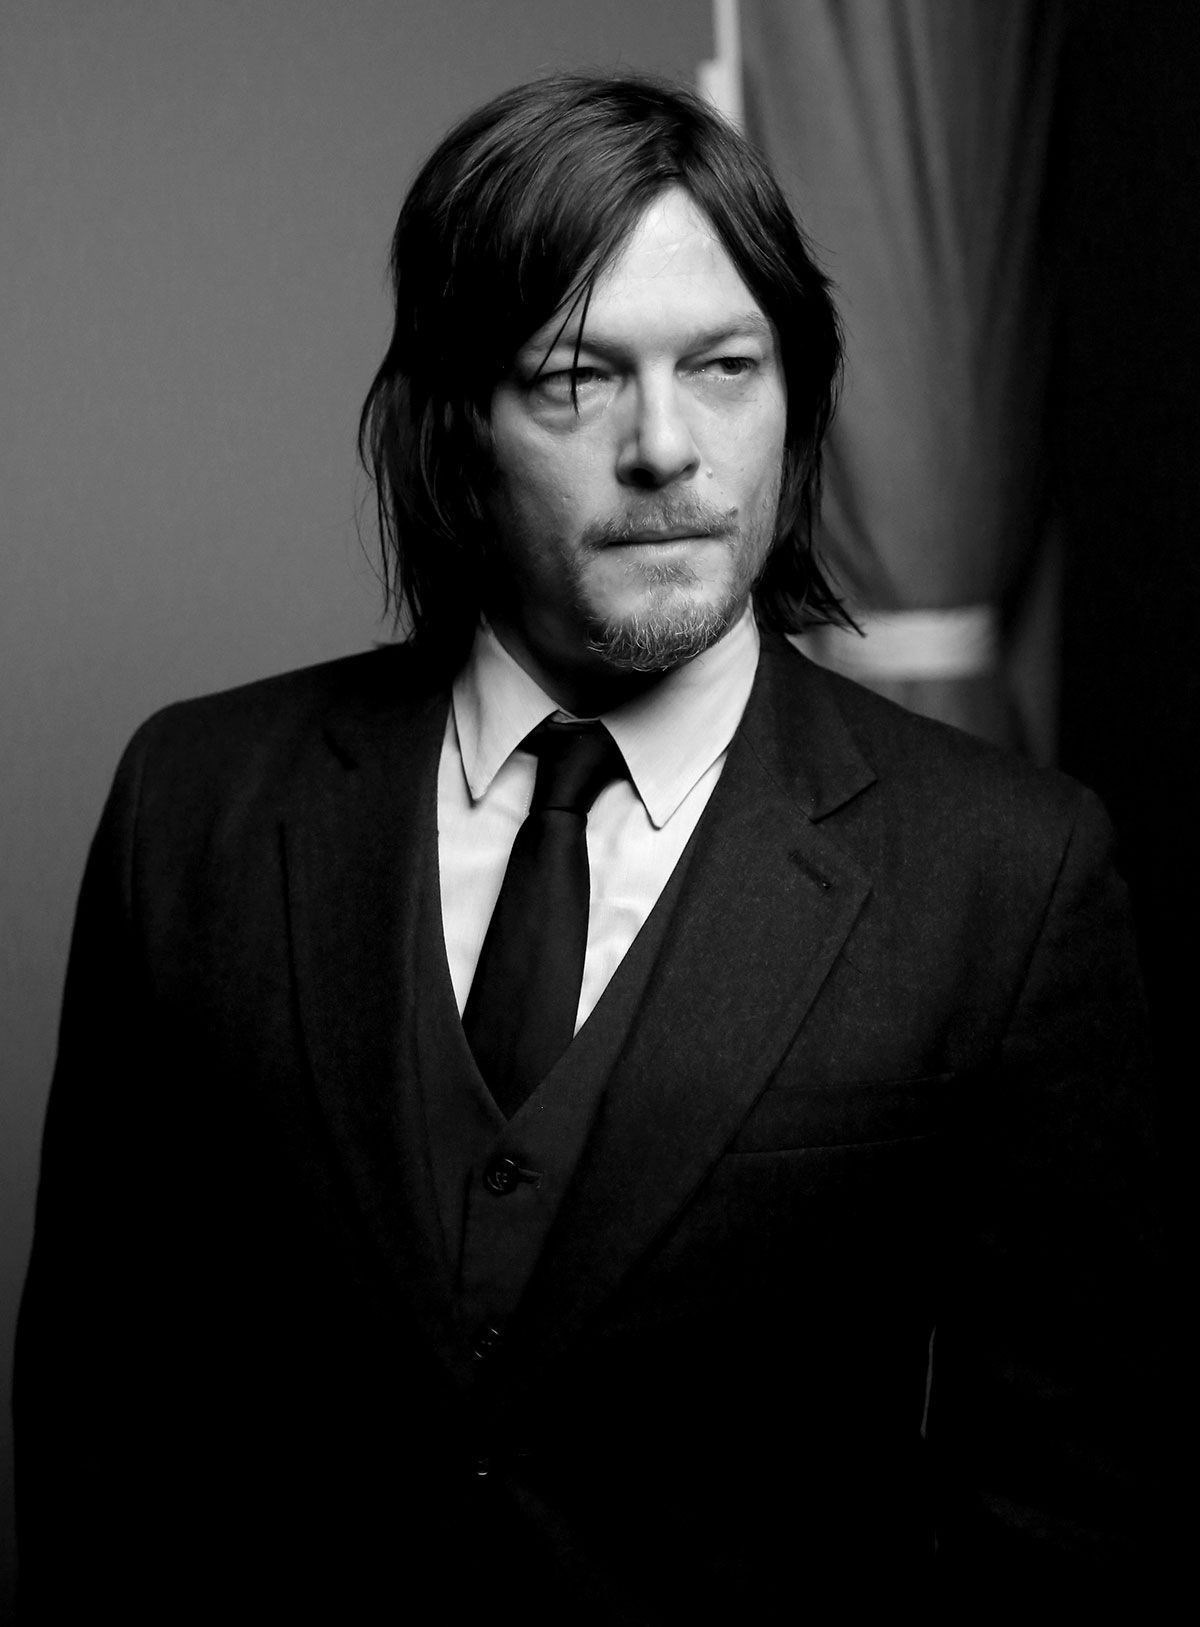 Boondock Girl Wallpaper Norman Reedus Known People Famous People News And